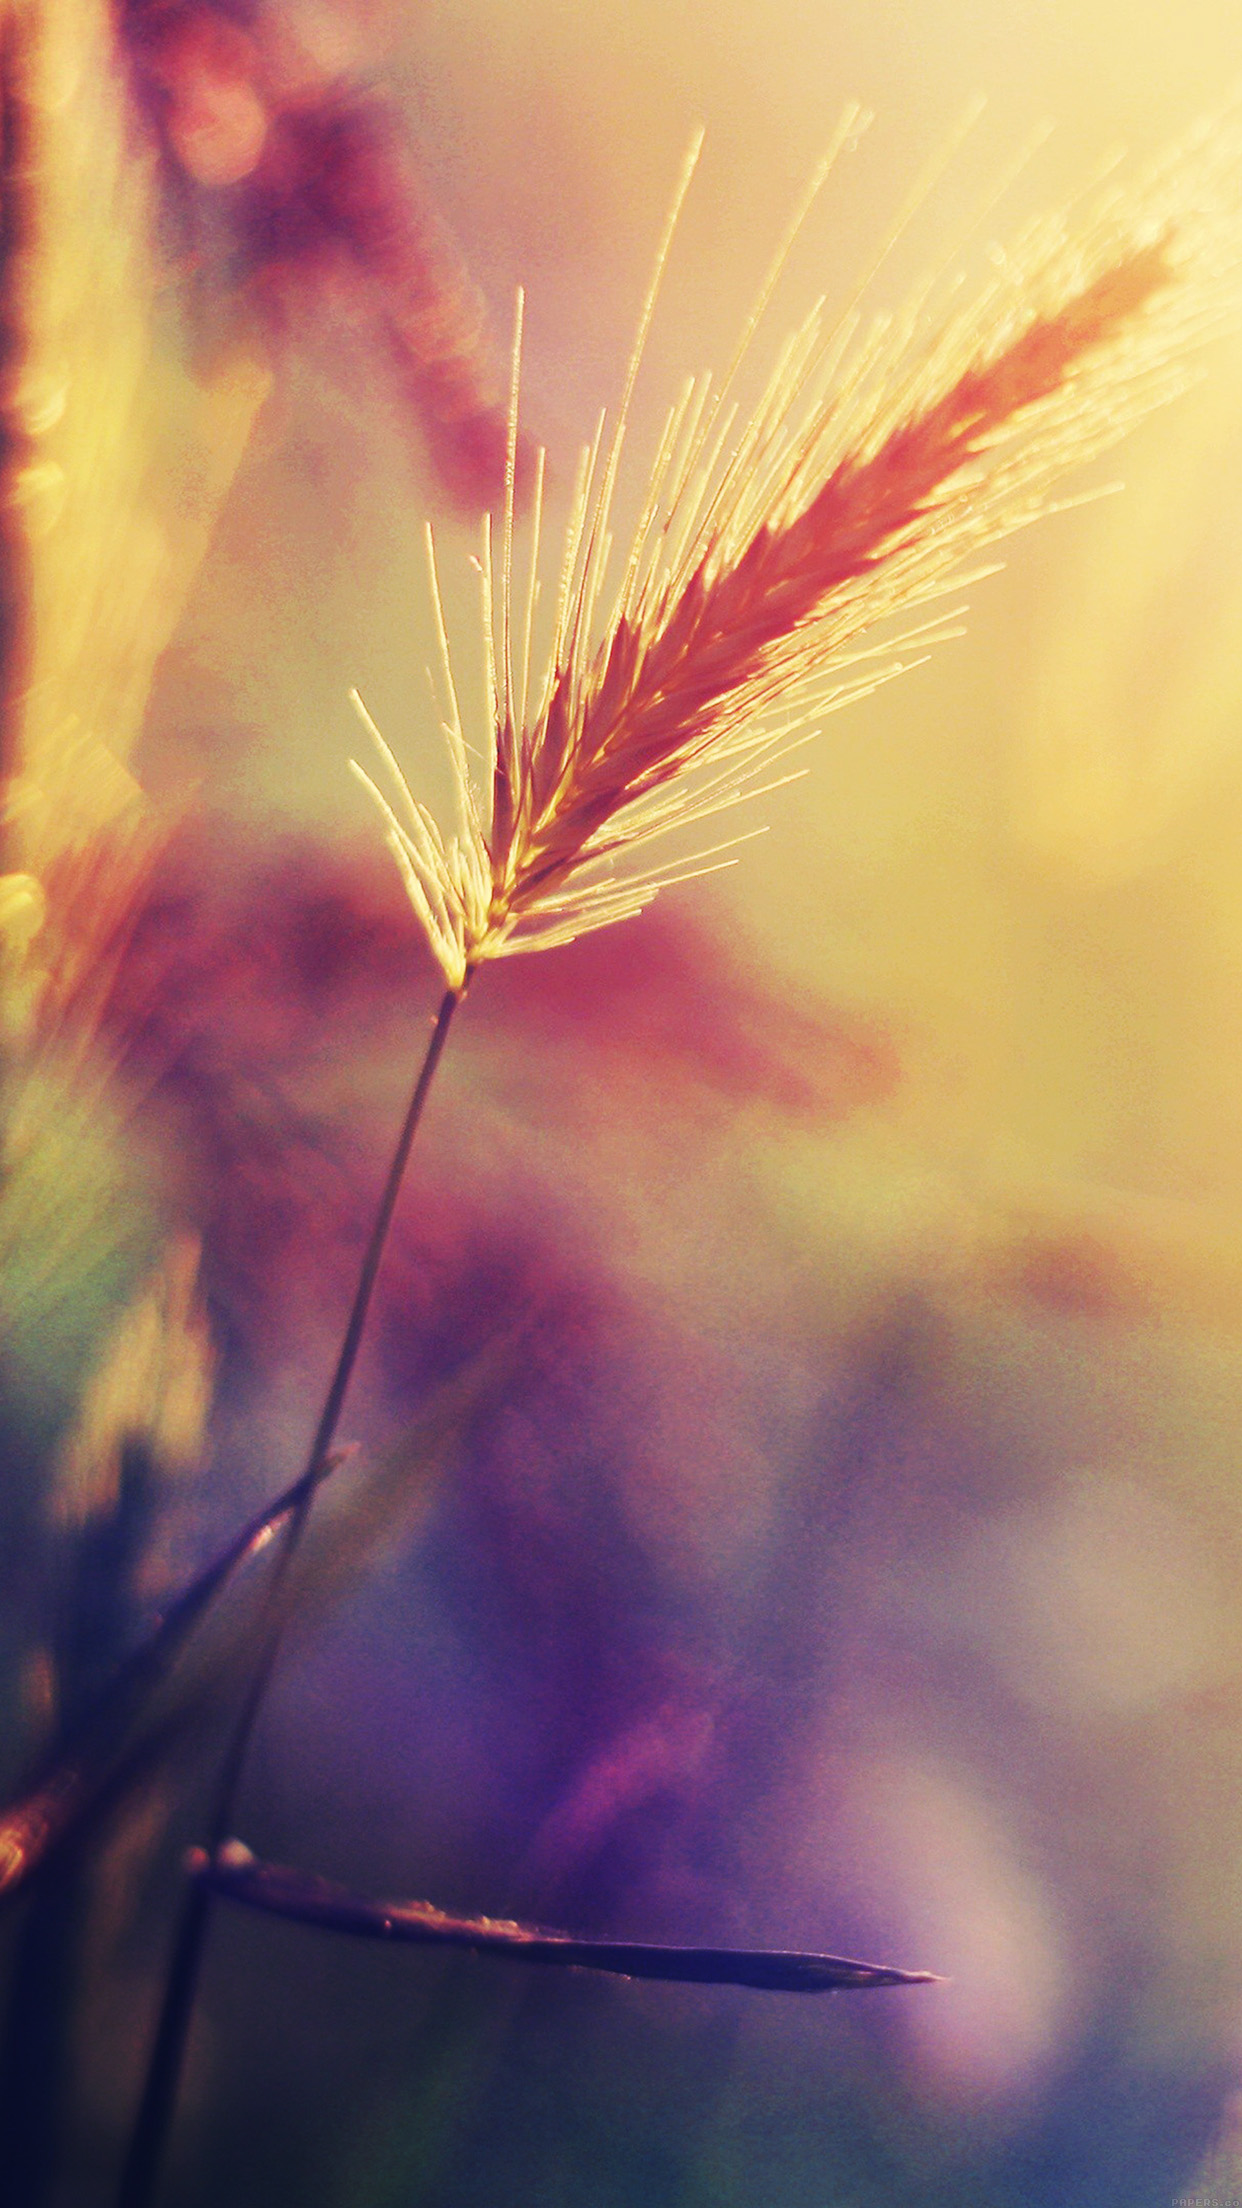 Fall Hd Wallpapers For Mac Papers Co Iphone Wallpaper Mm19 Sunset Reed Flower